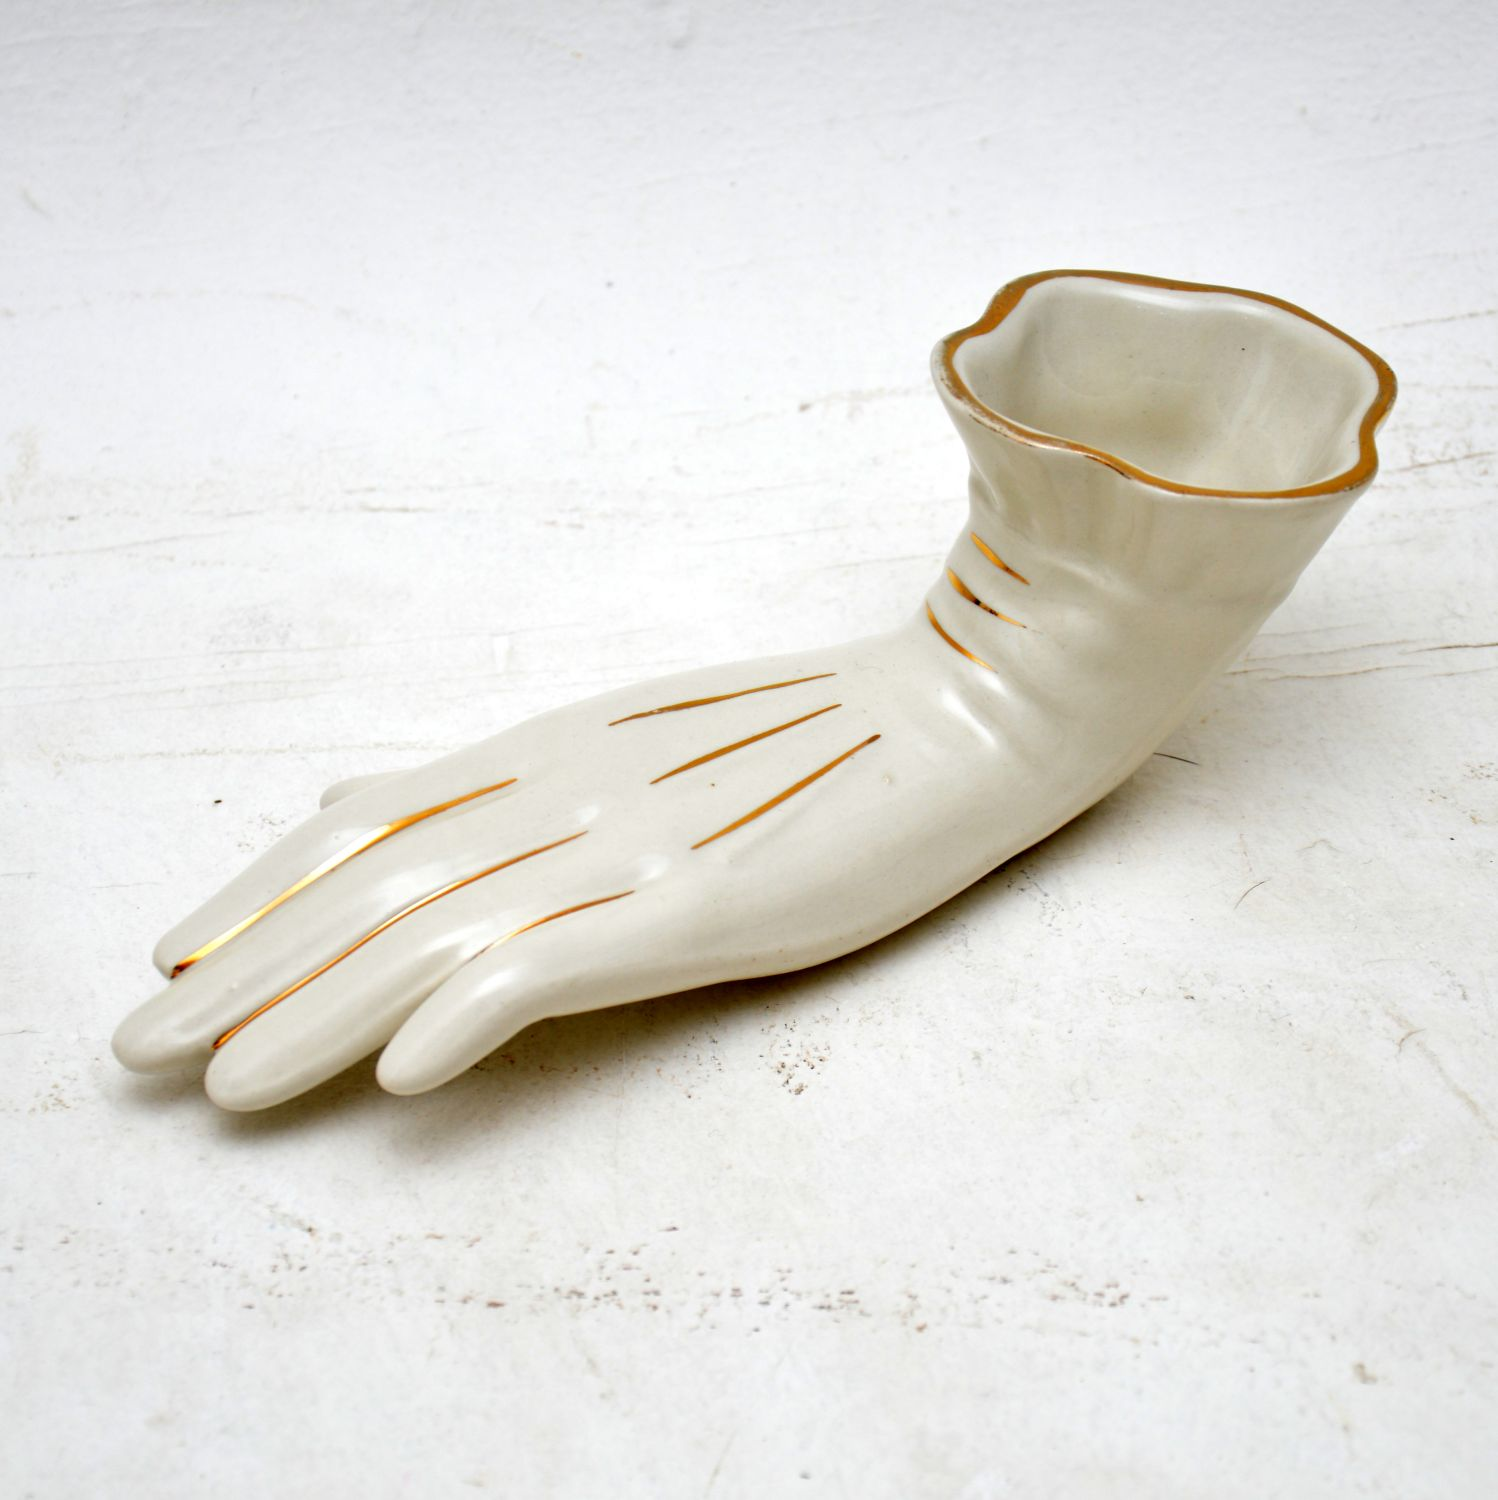 retro vintage ceramic porcelain glove pencil holder